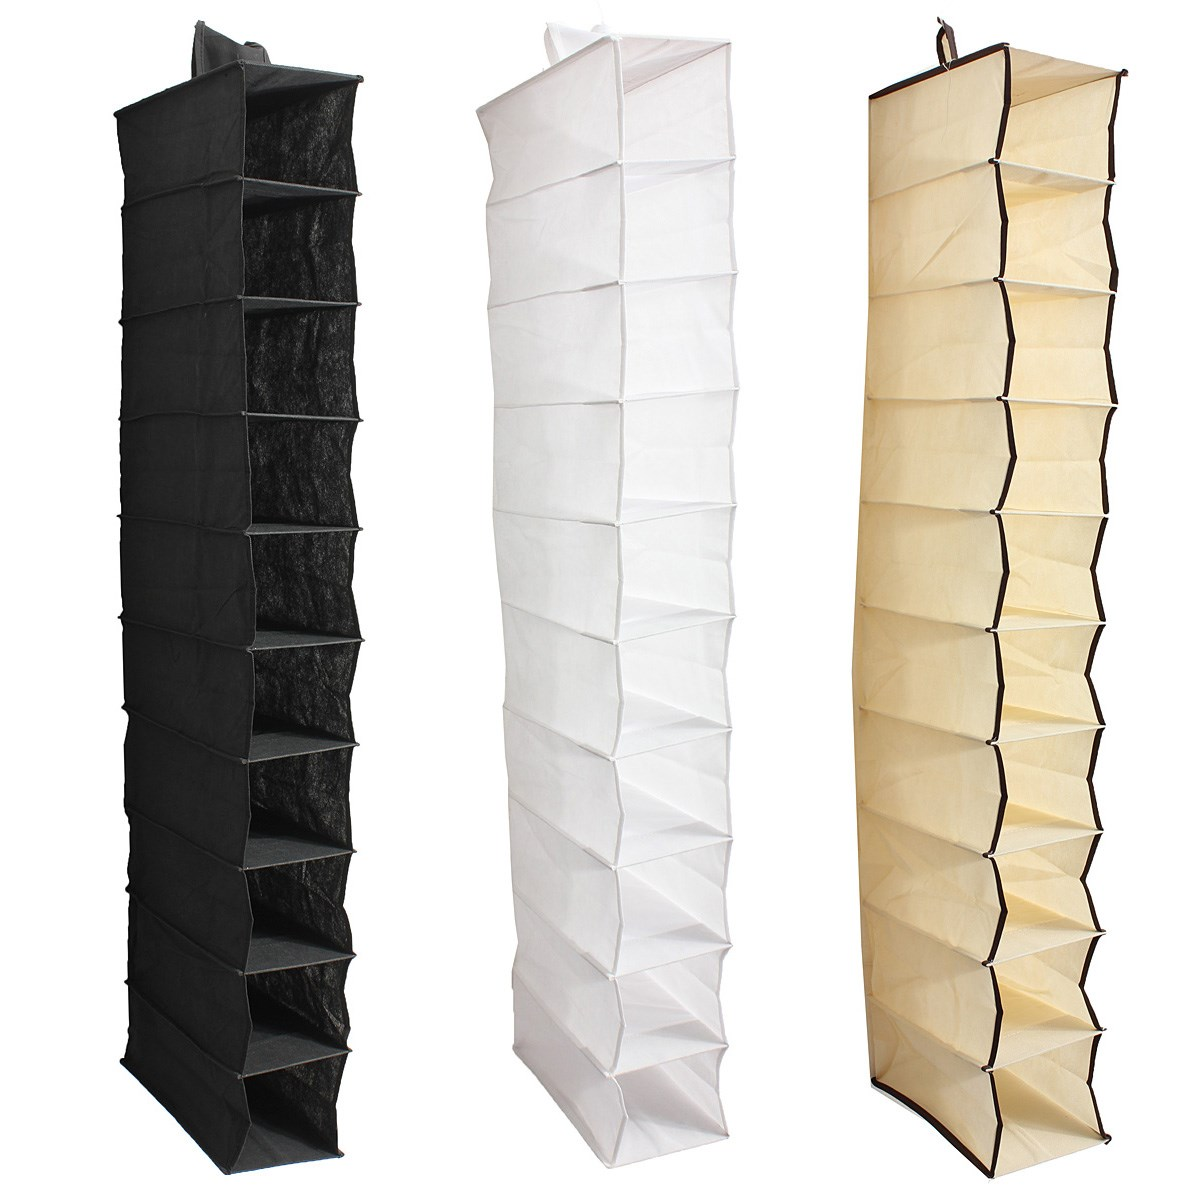 10 Section Shoes Garment Organiser Rack Storage Hanging Bag Stand Clothes Holder Wardrobe Door Behind Household(China (Mainland))